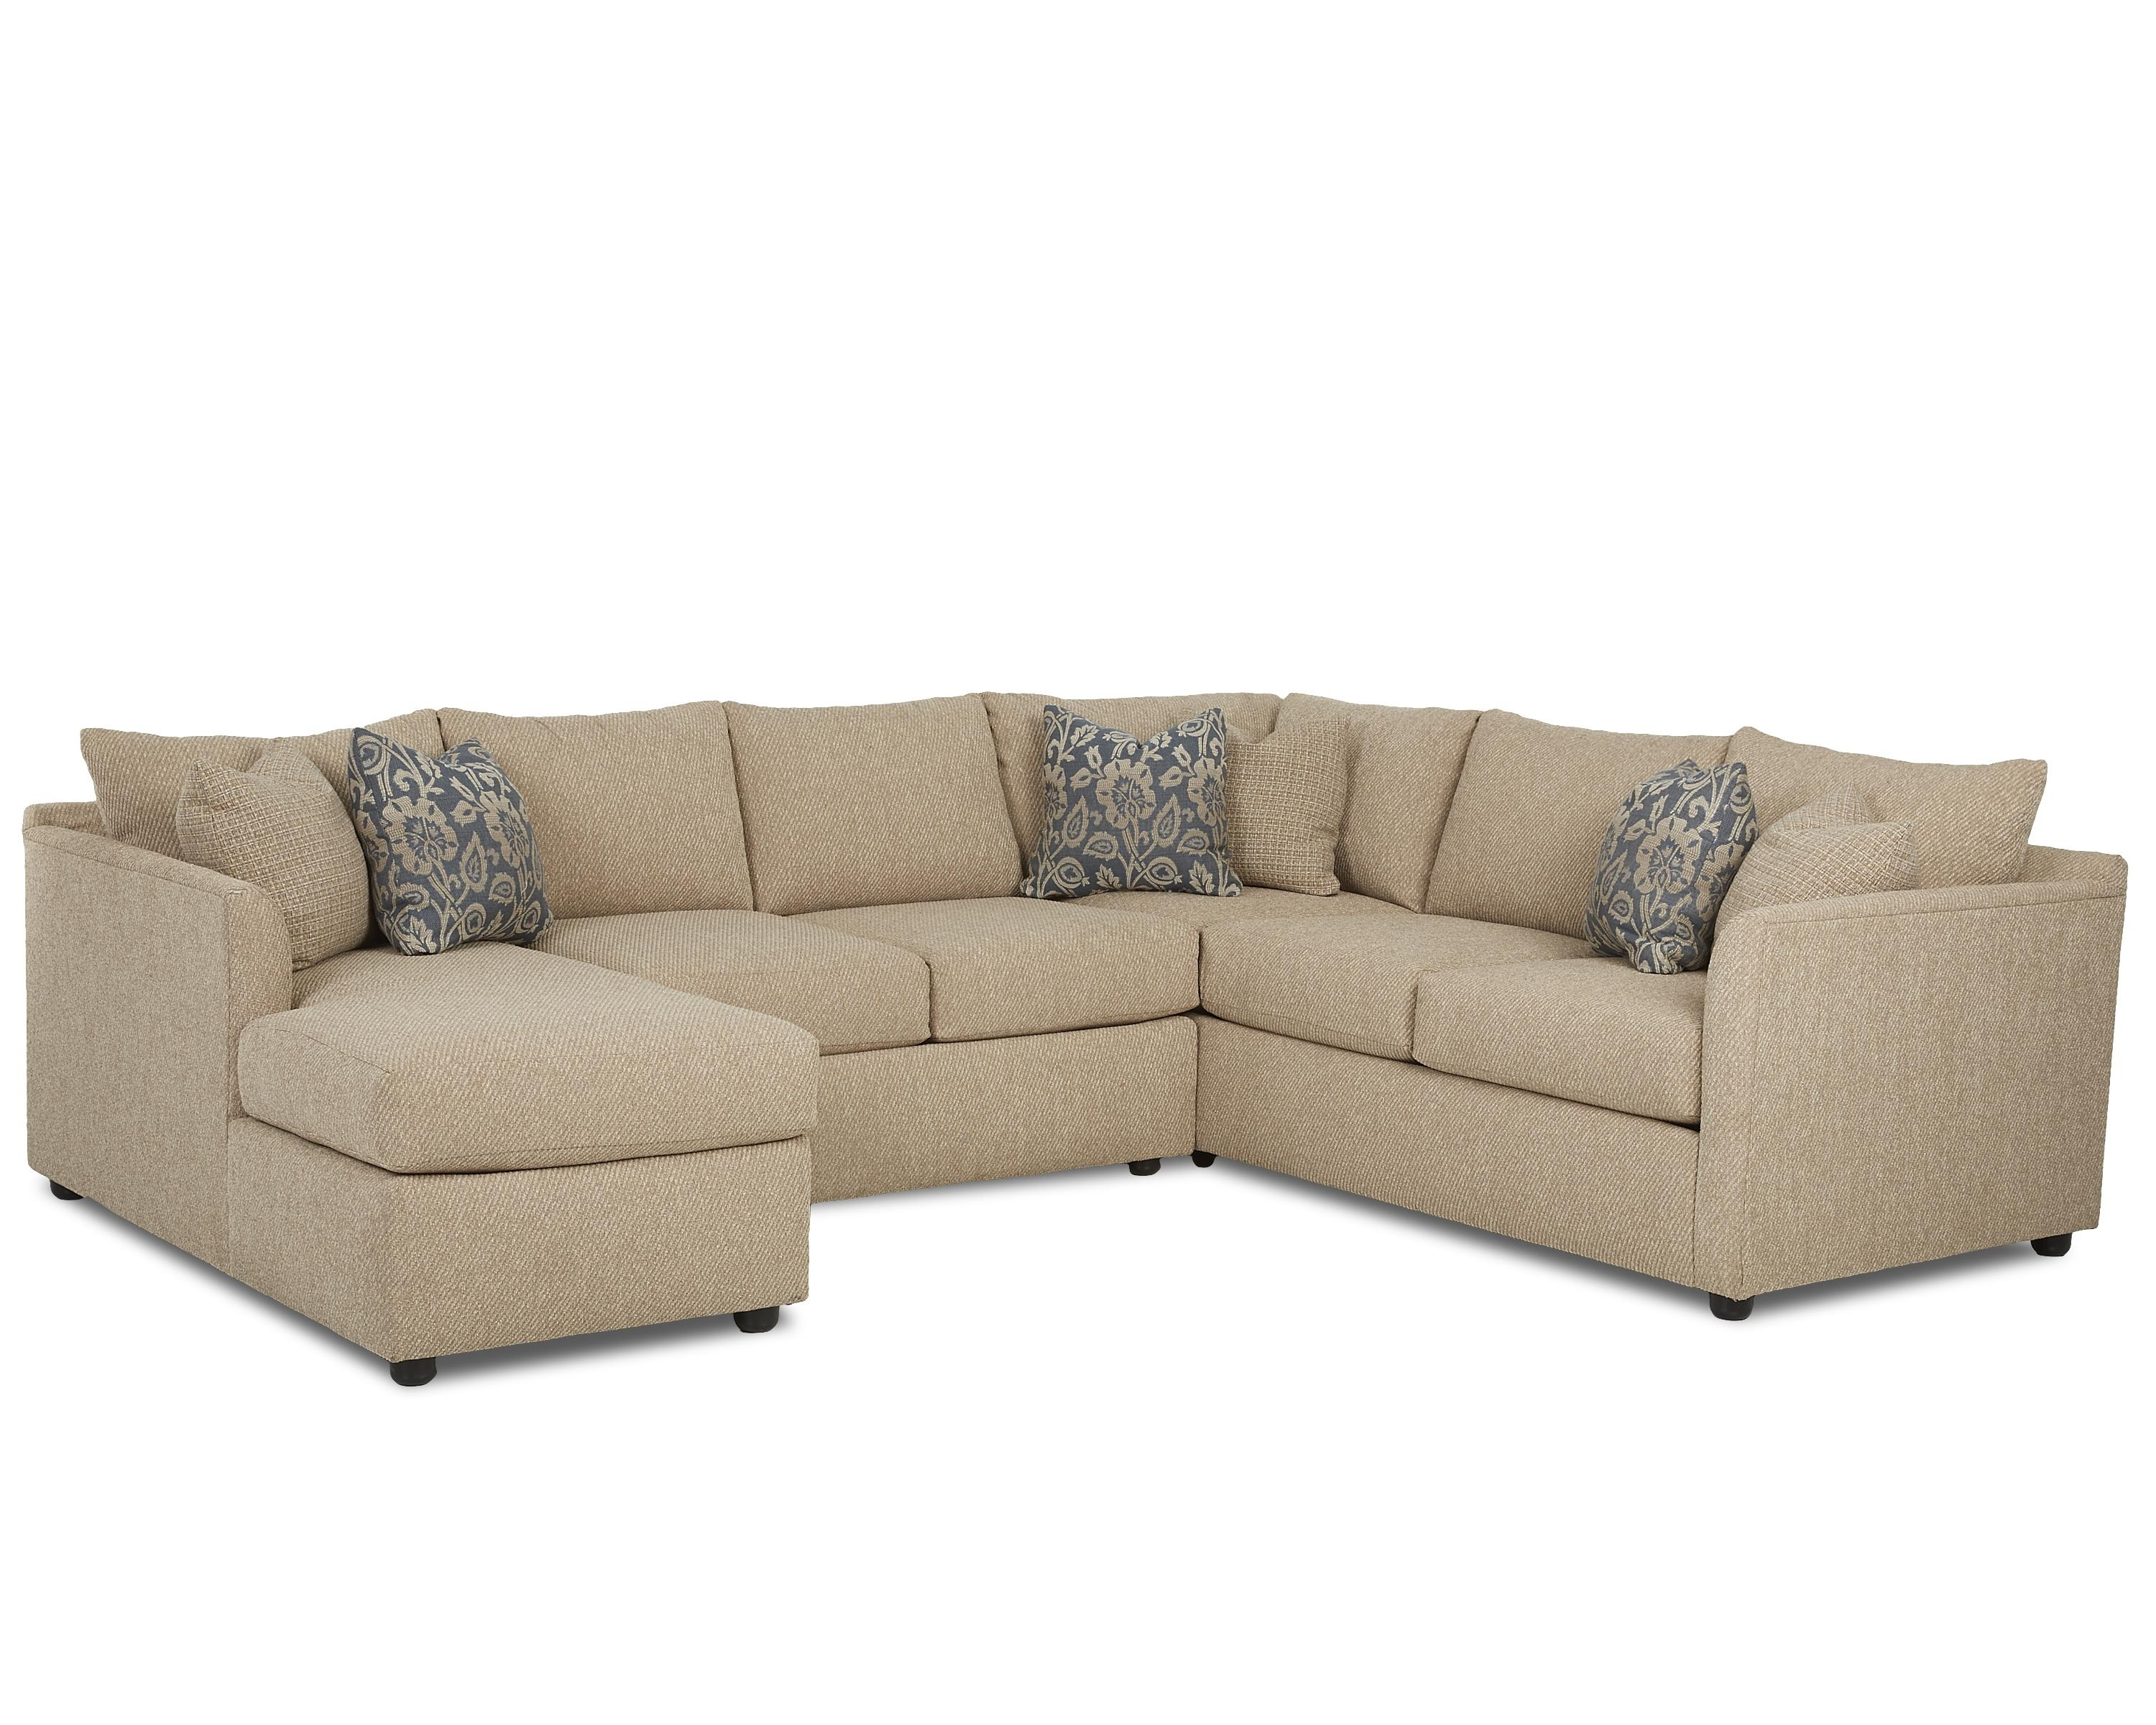 Transitional Sectional Sofa With Chaisetrisha Yearwood Home Pertaining To Most Popular Sectional Sofas In Atlanta (View 10 of 20)